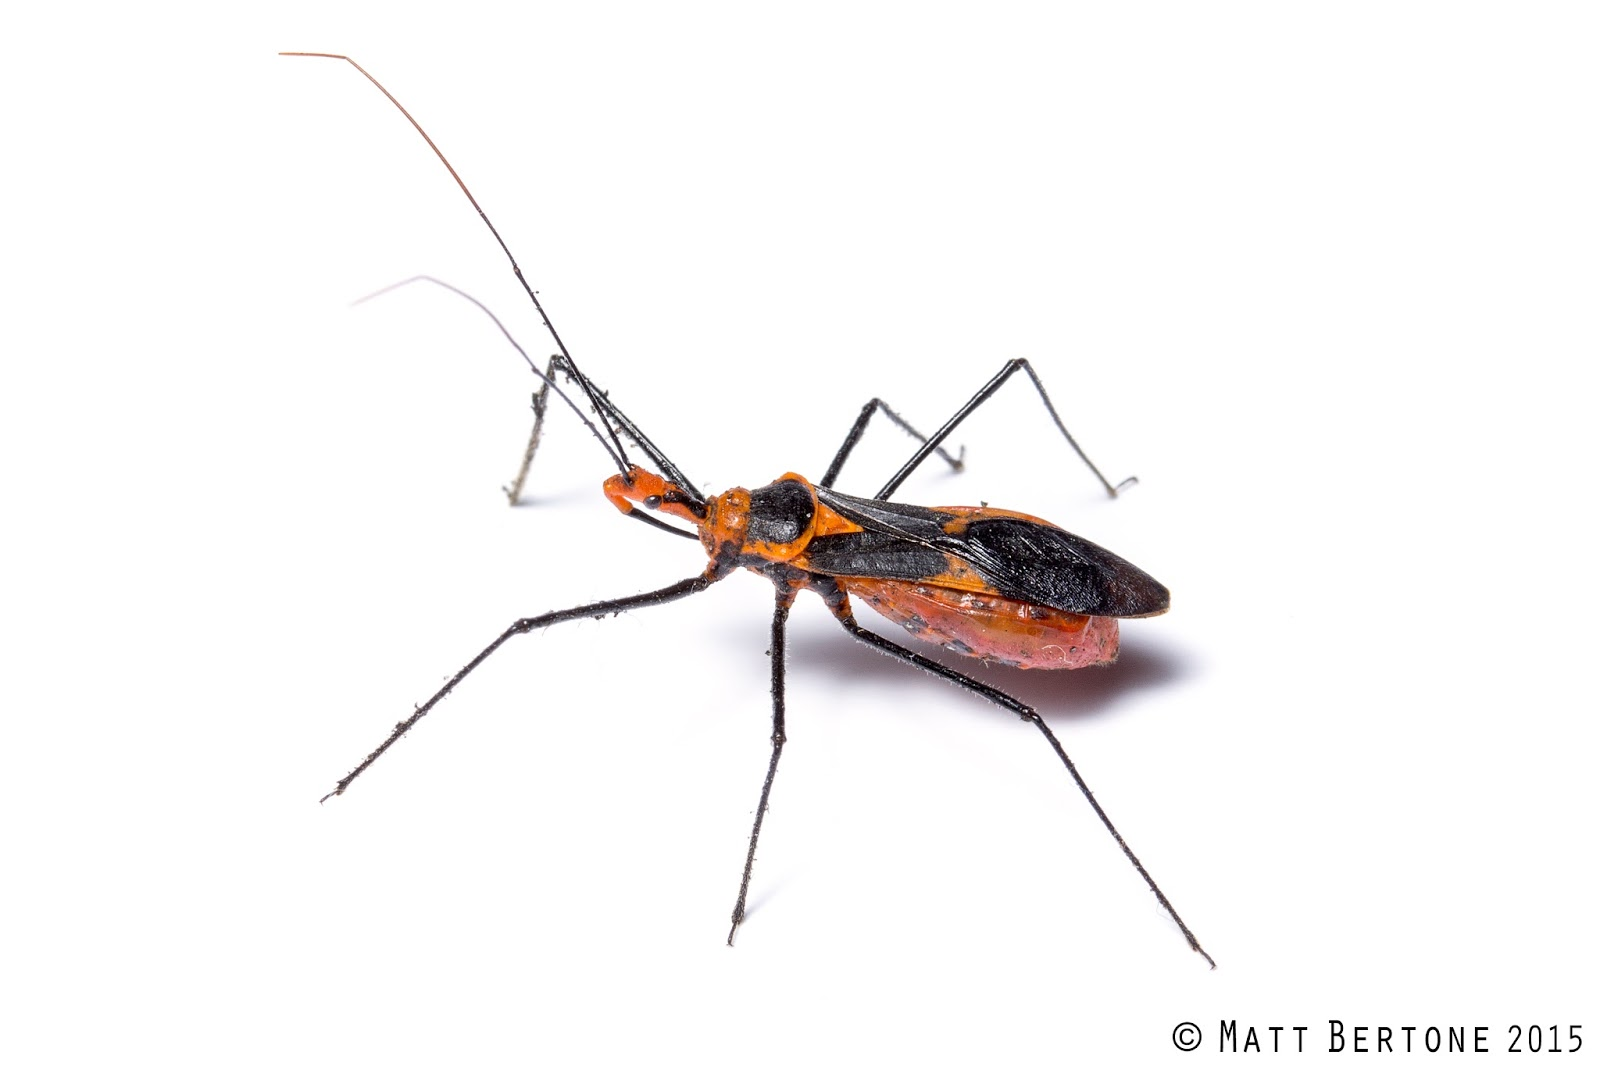 Milkweed assassins  Zelus longipes  are medium sized  distinctively  red orange and black assassin bugs with long legs  They are often found out  on plants. NCSU PDIC  Kissing Bugs and Chagas Disease in NC